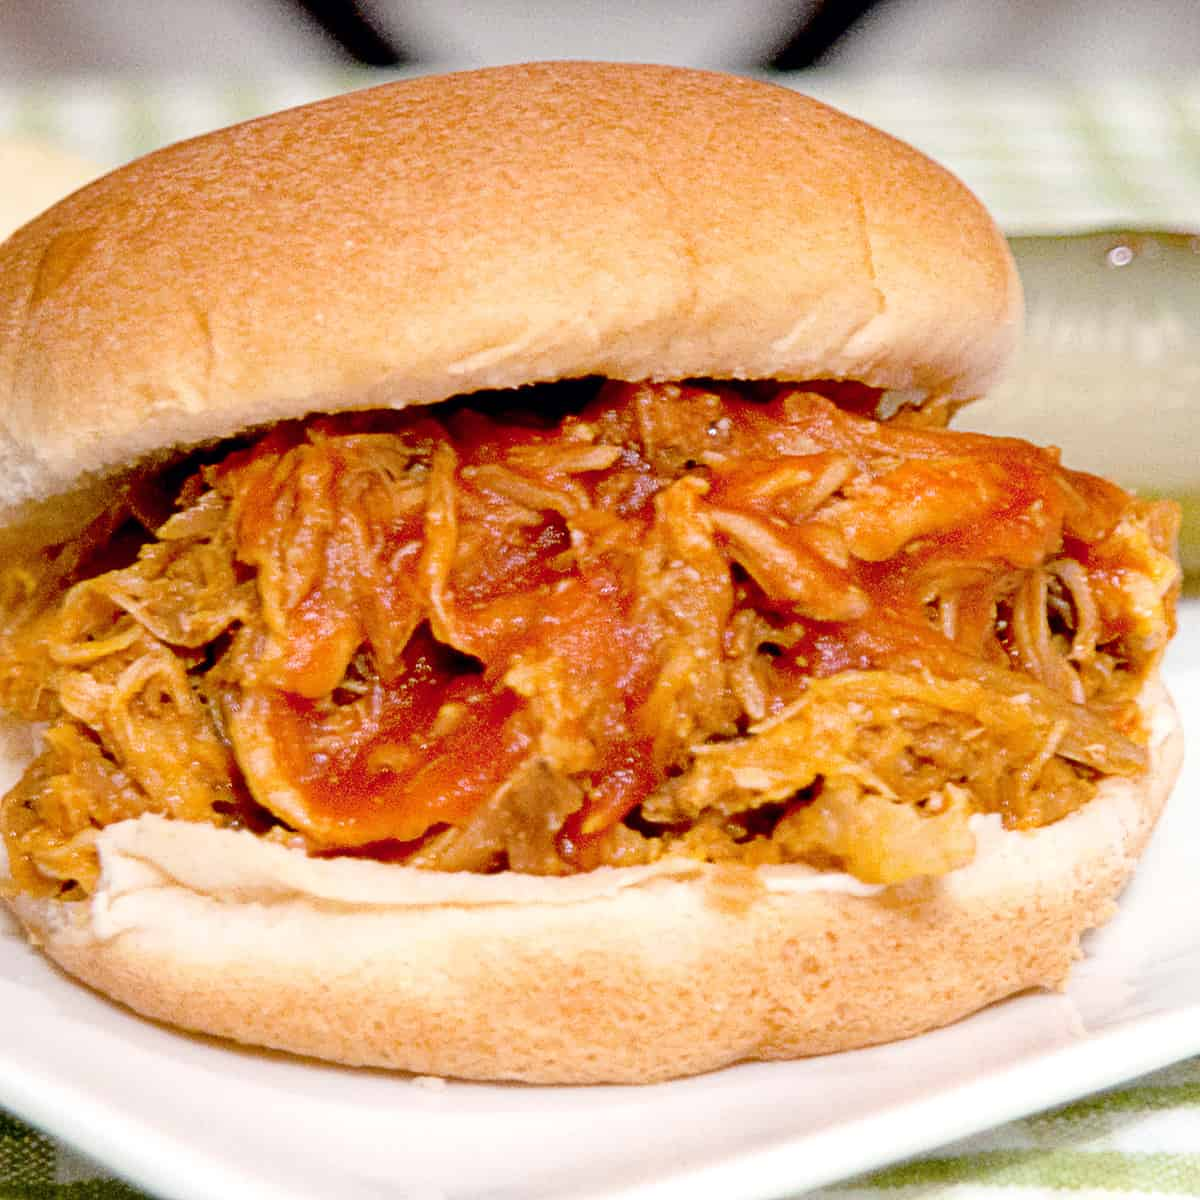 Pulled pork barbecue sandwich on a white serving plate.